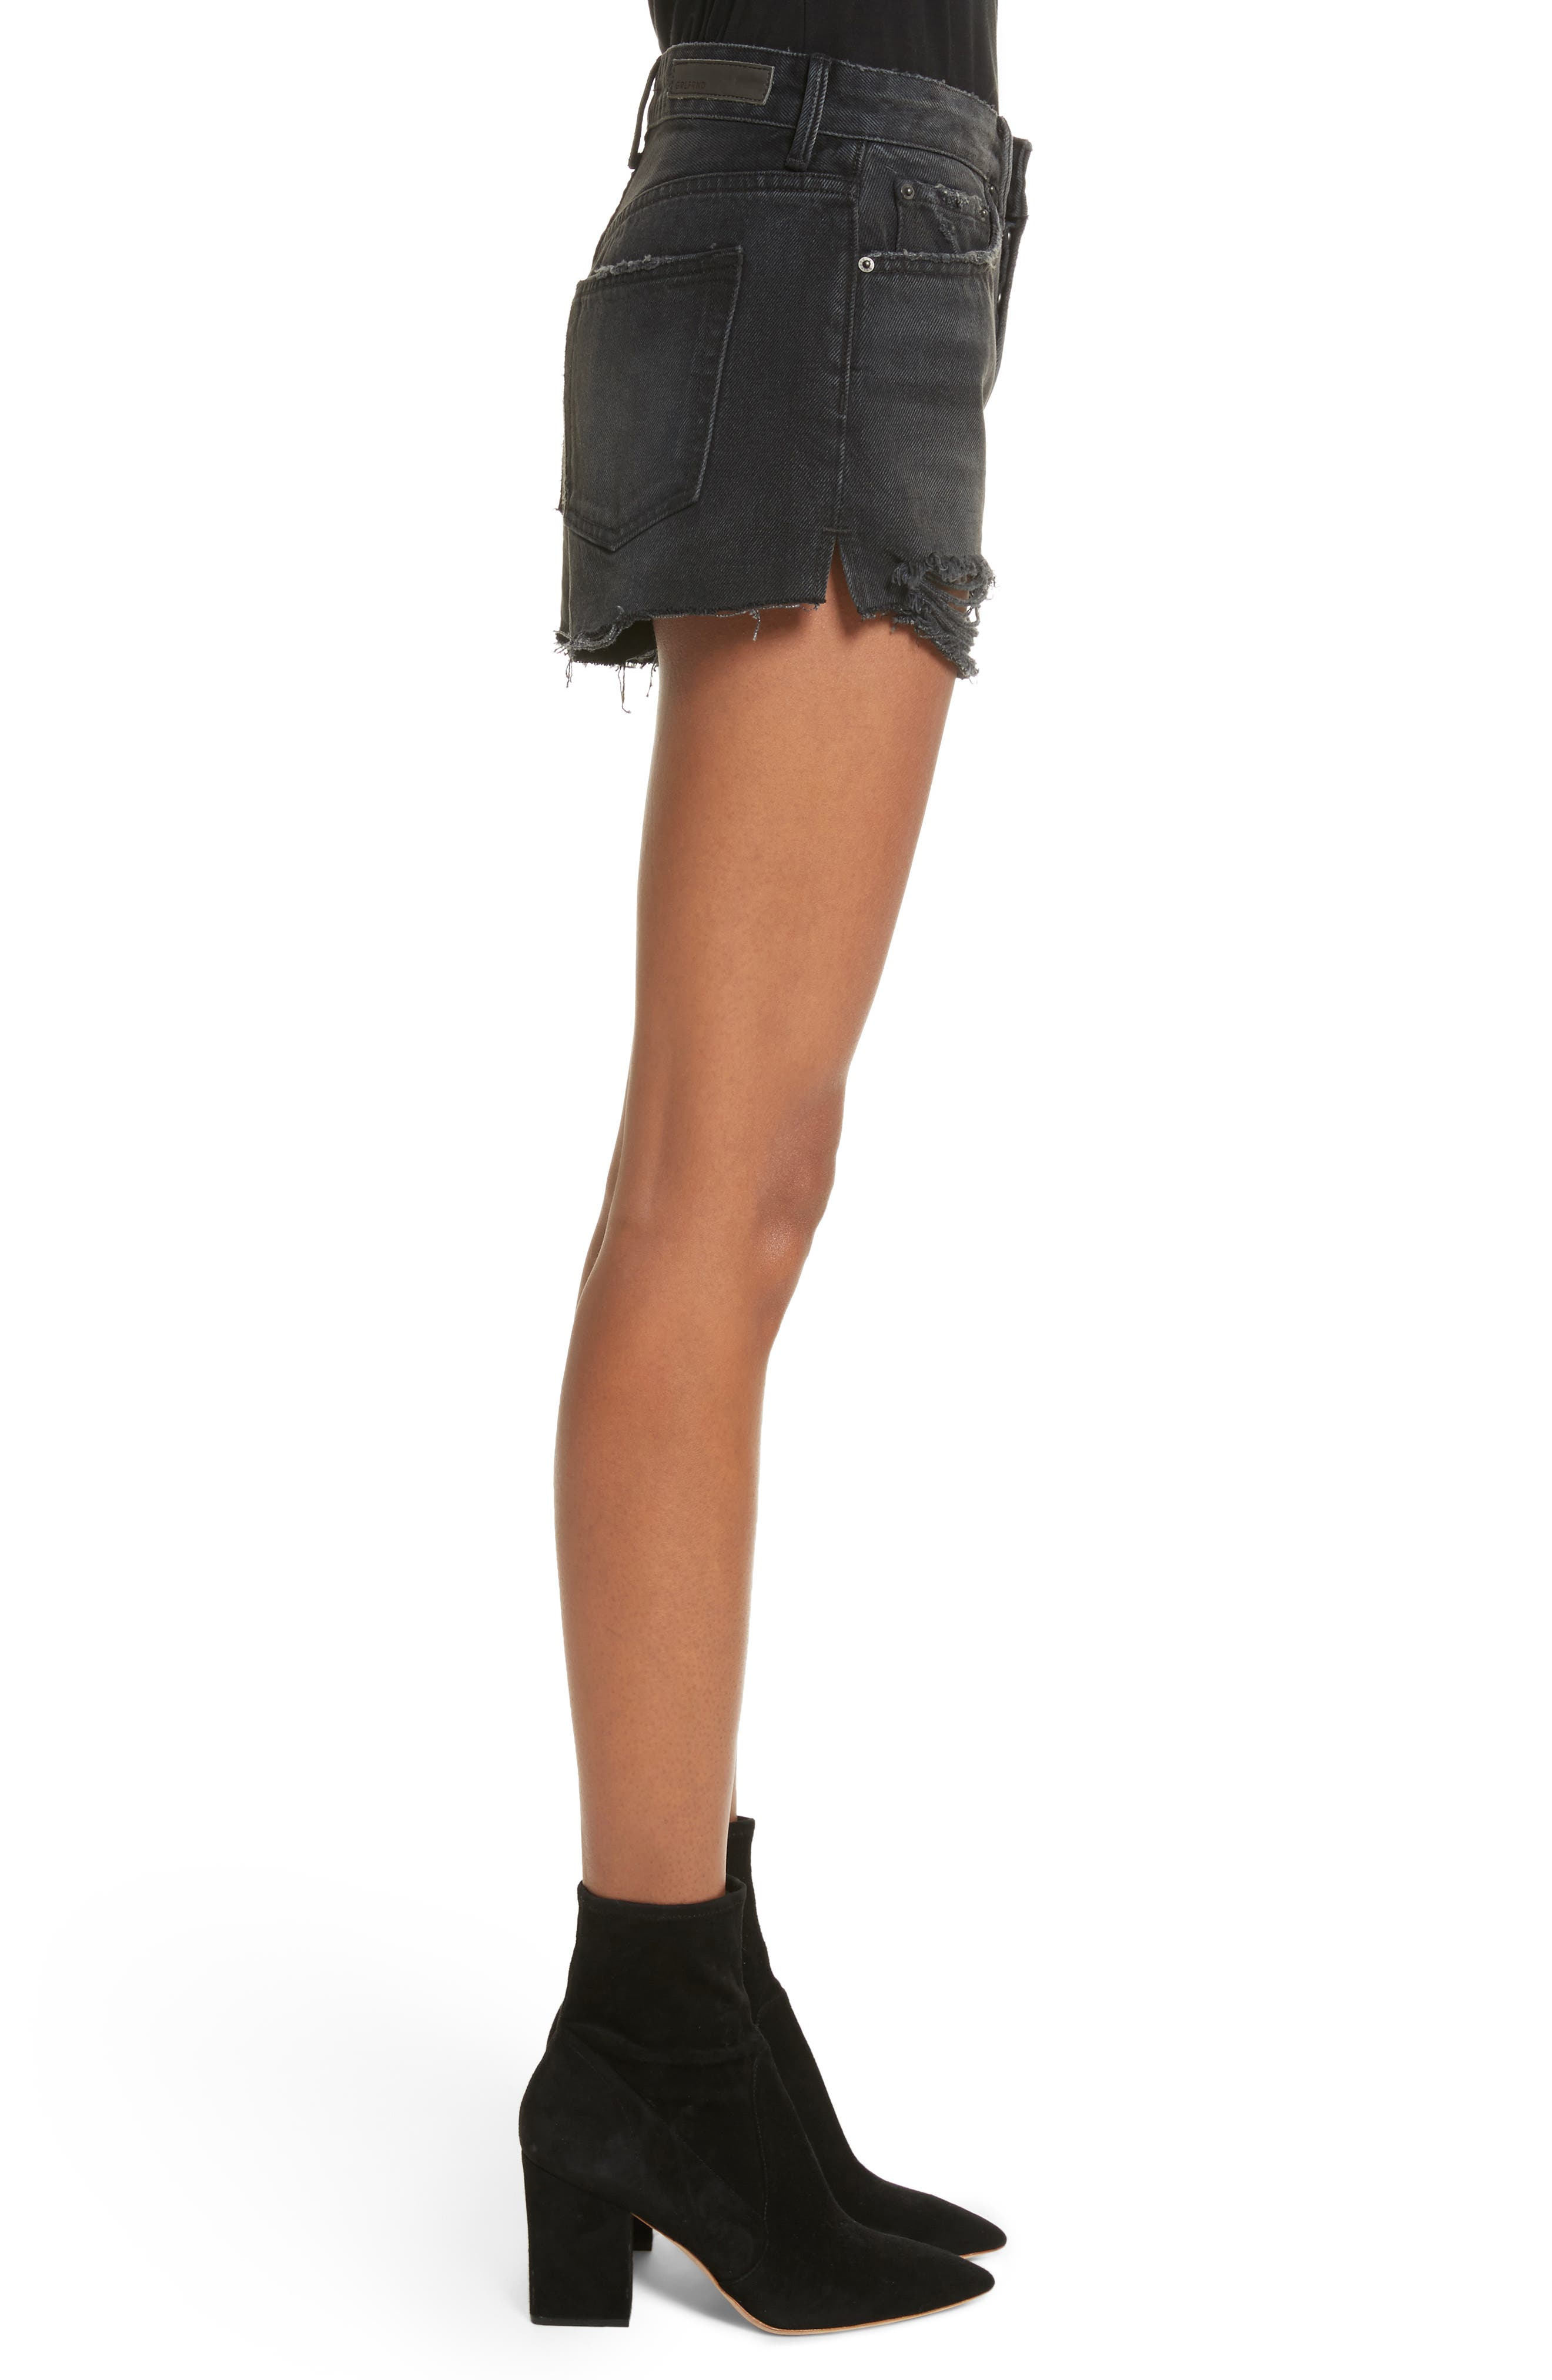 Cindy Rigid High Waist Denim Shorts,                             Alternate thumbnail 3, color,                             007